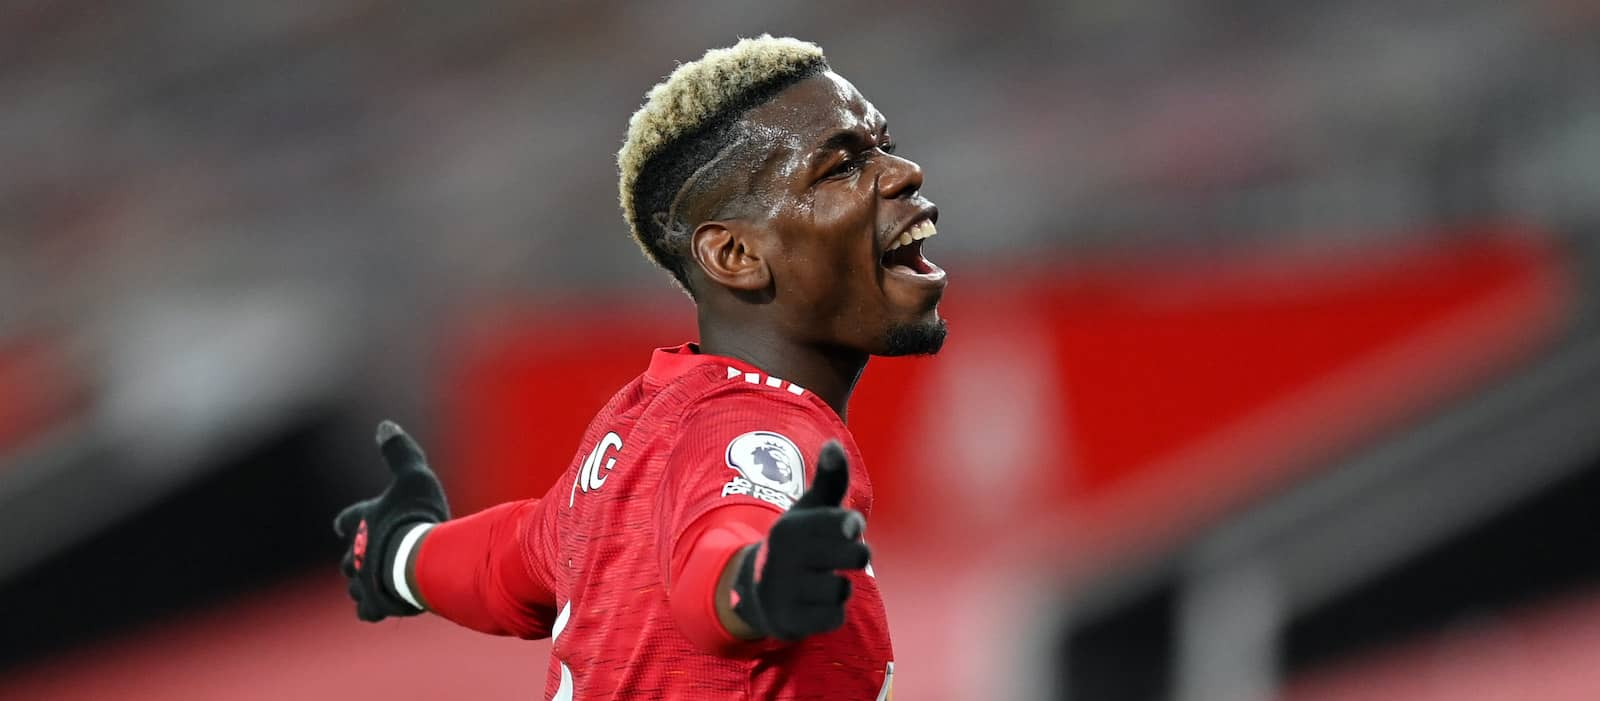 Peter Crouch insists Manchester United players would be making fun of Paul Pogba